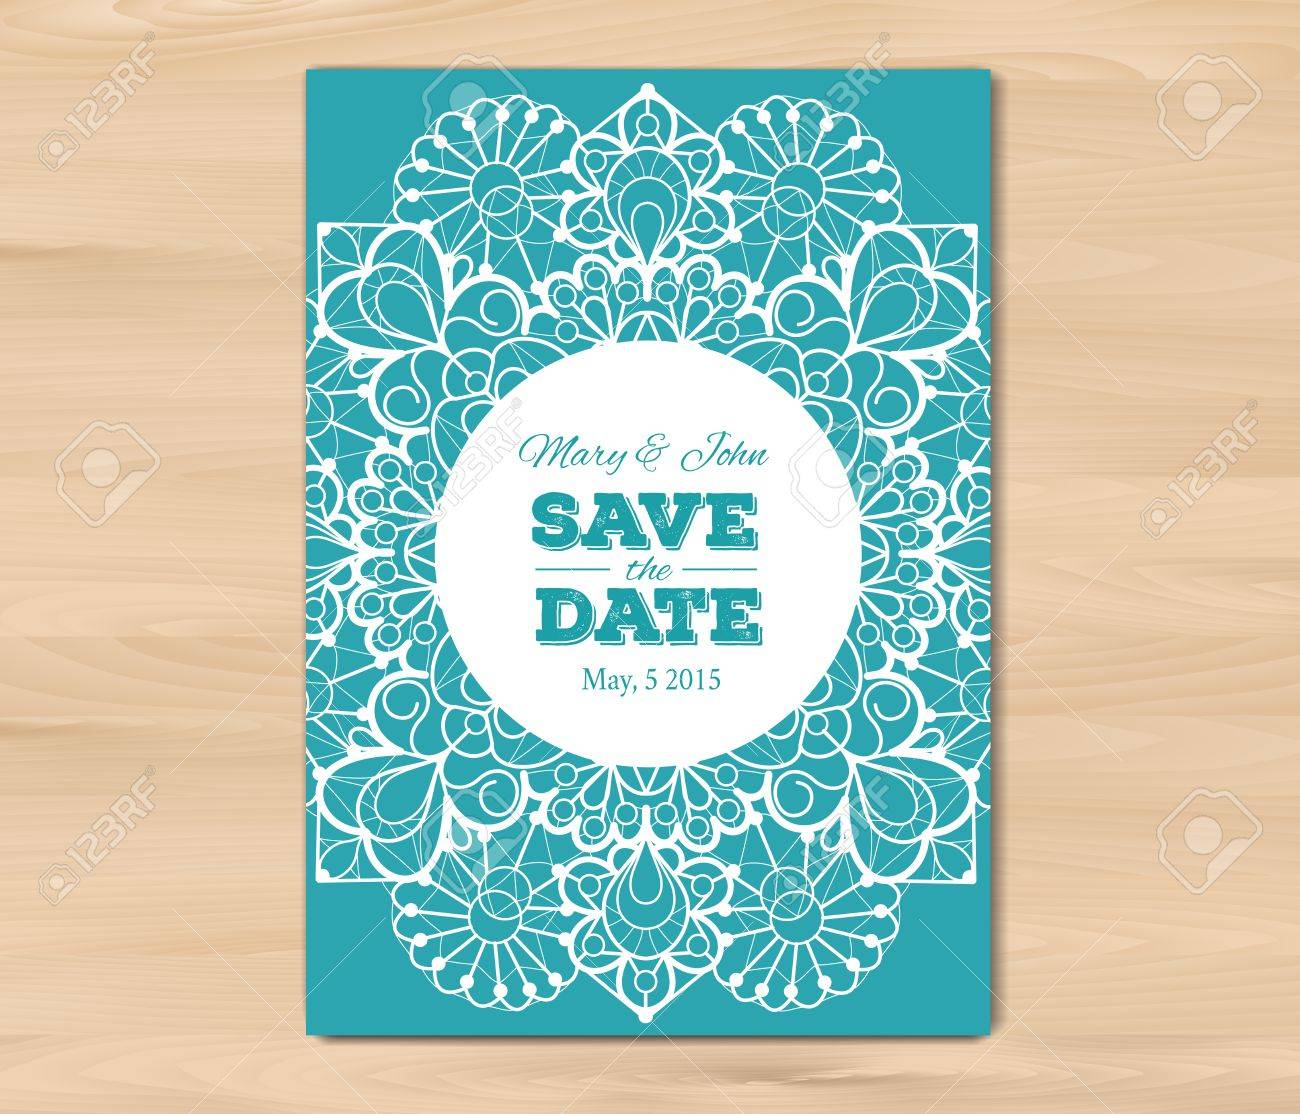 save the date card template on a wooden background vintage lace design eps 10 vector free fonts used nexa rust alex brush crimson